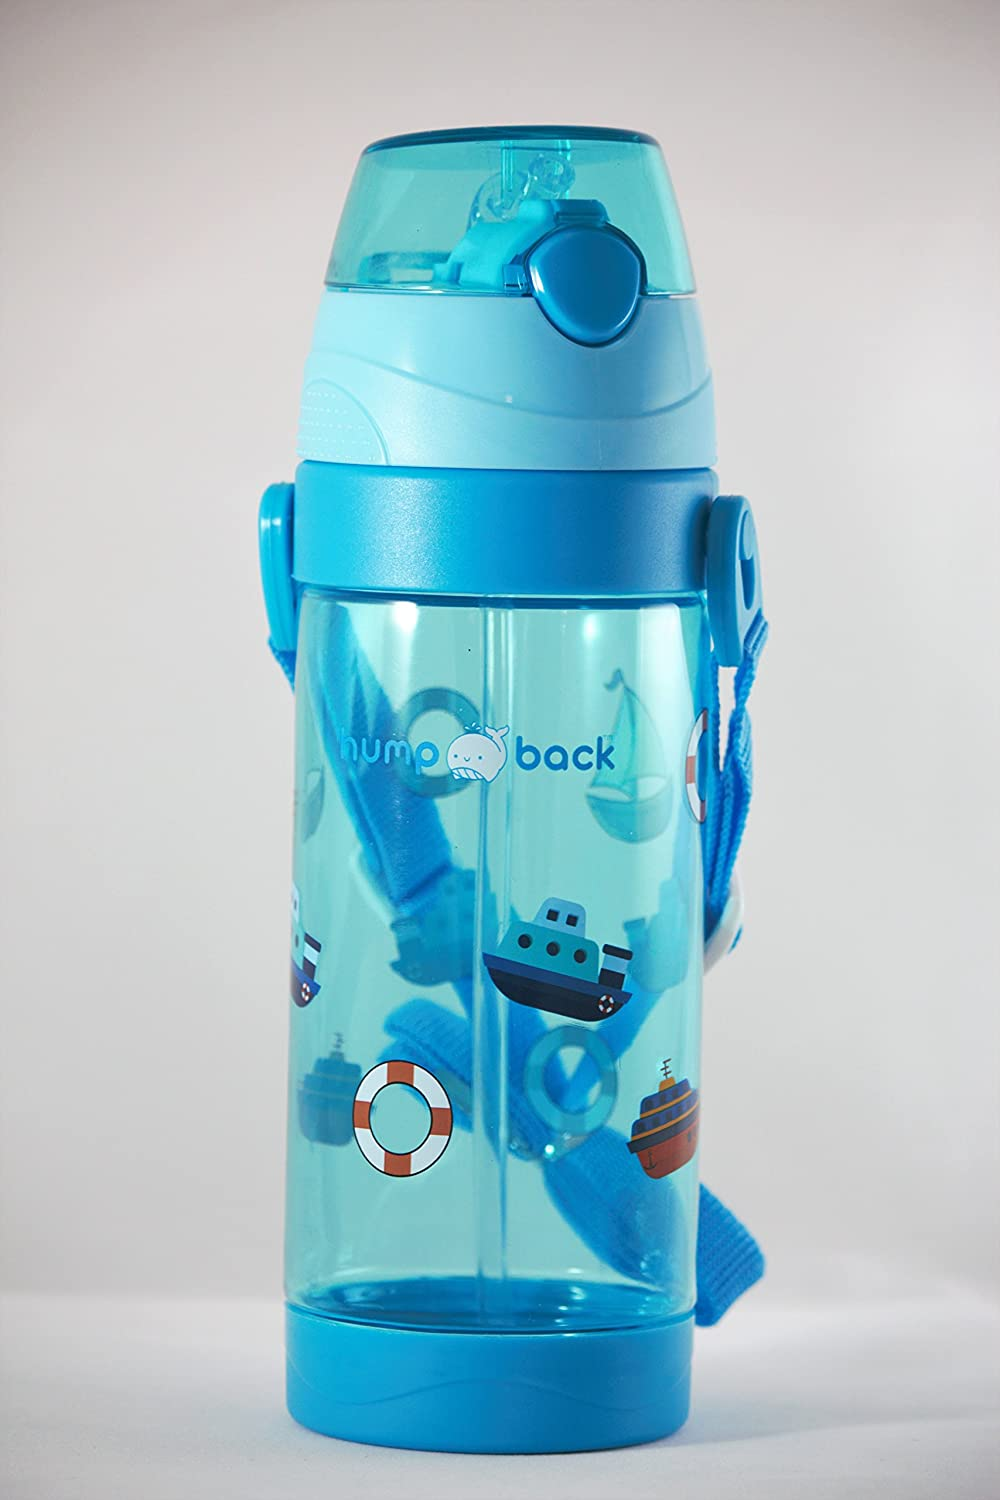 Humpback Boat kids water bottle 550ml/18.6oz with strap (blue)